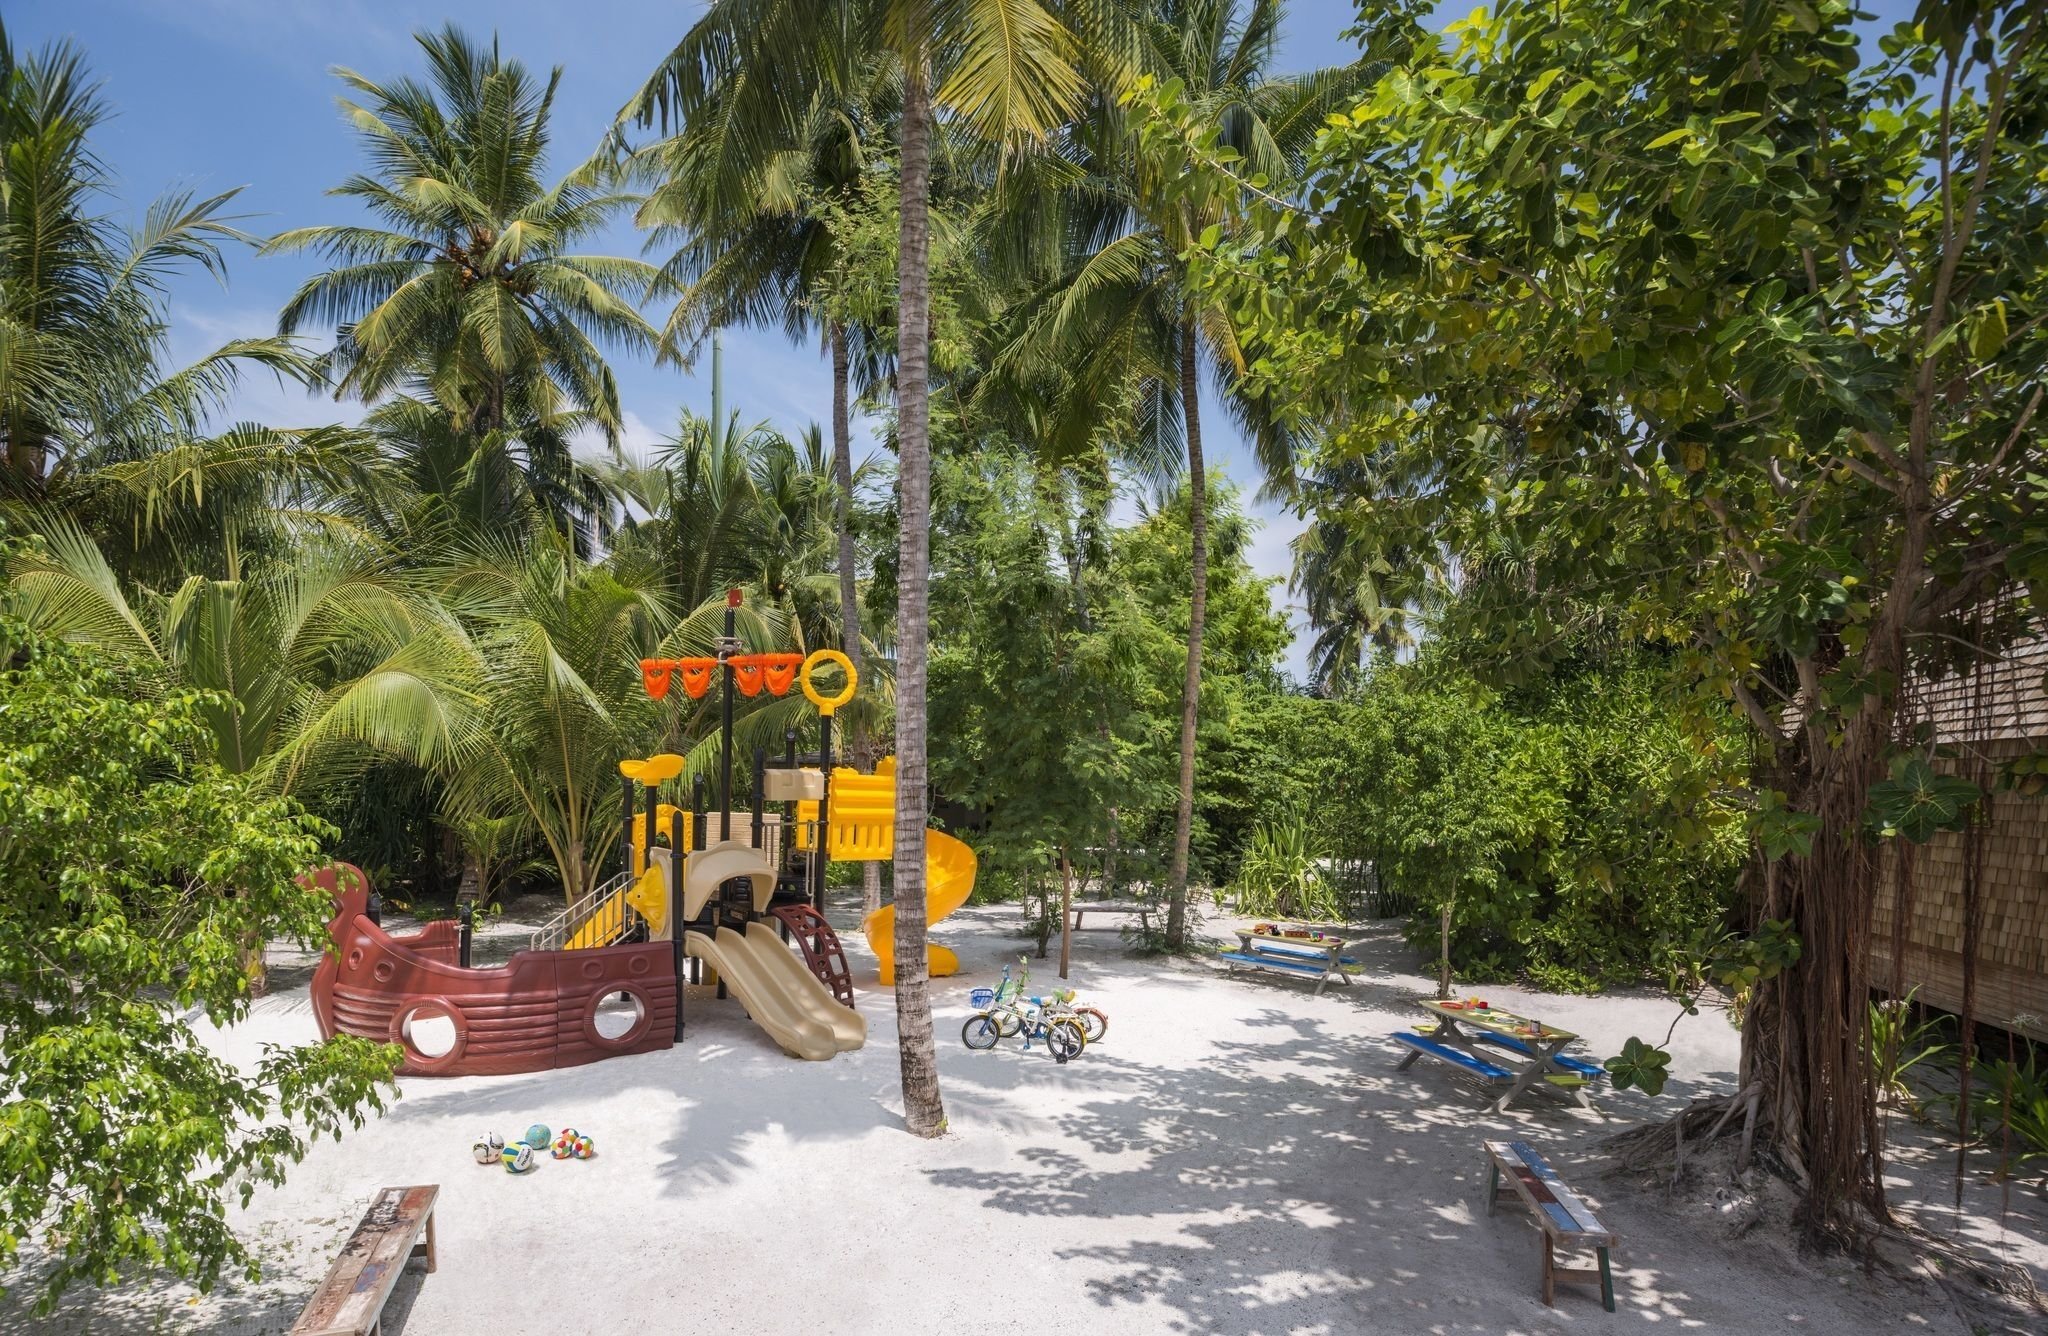 Kids Club Maldives